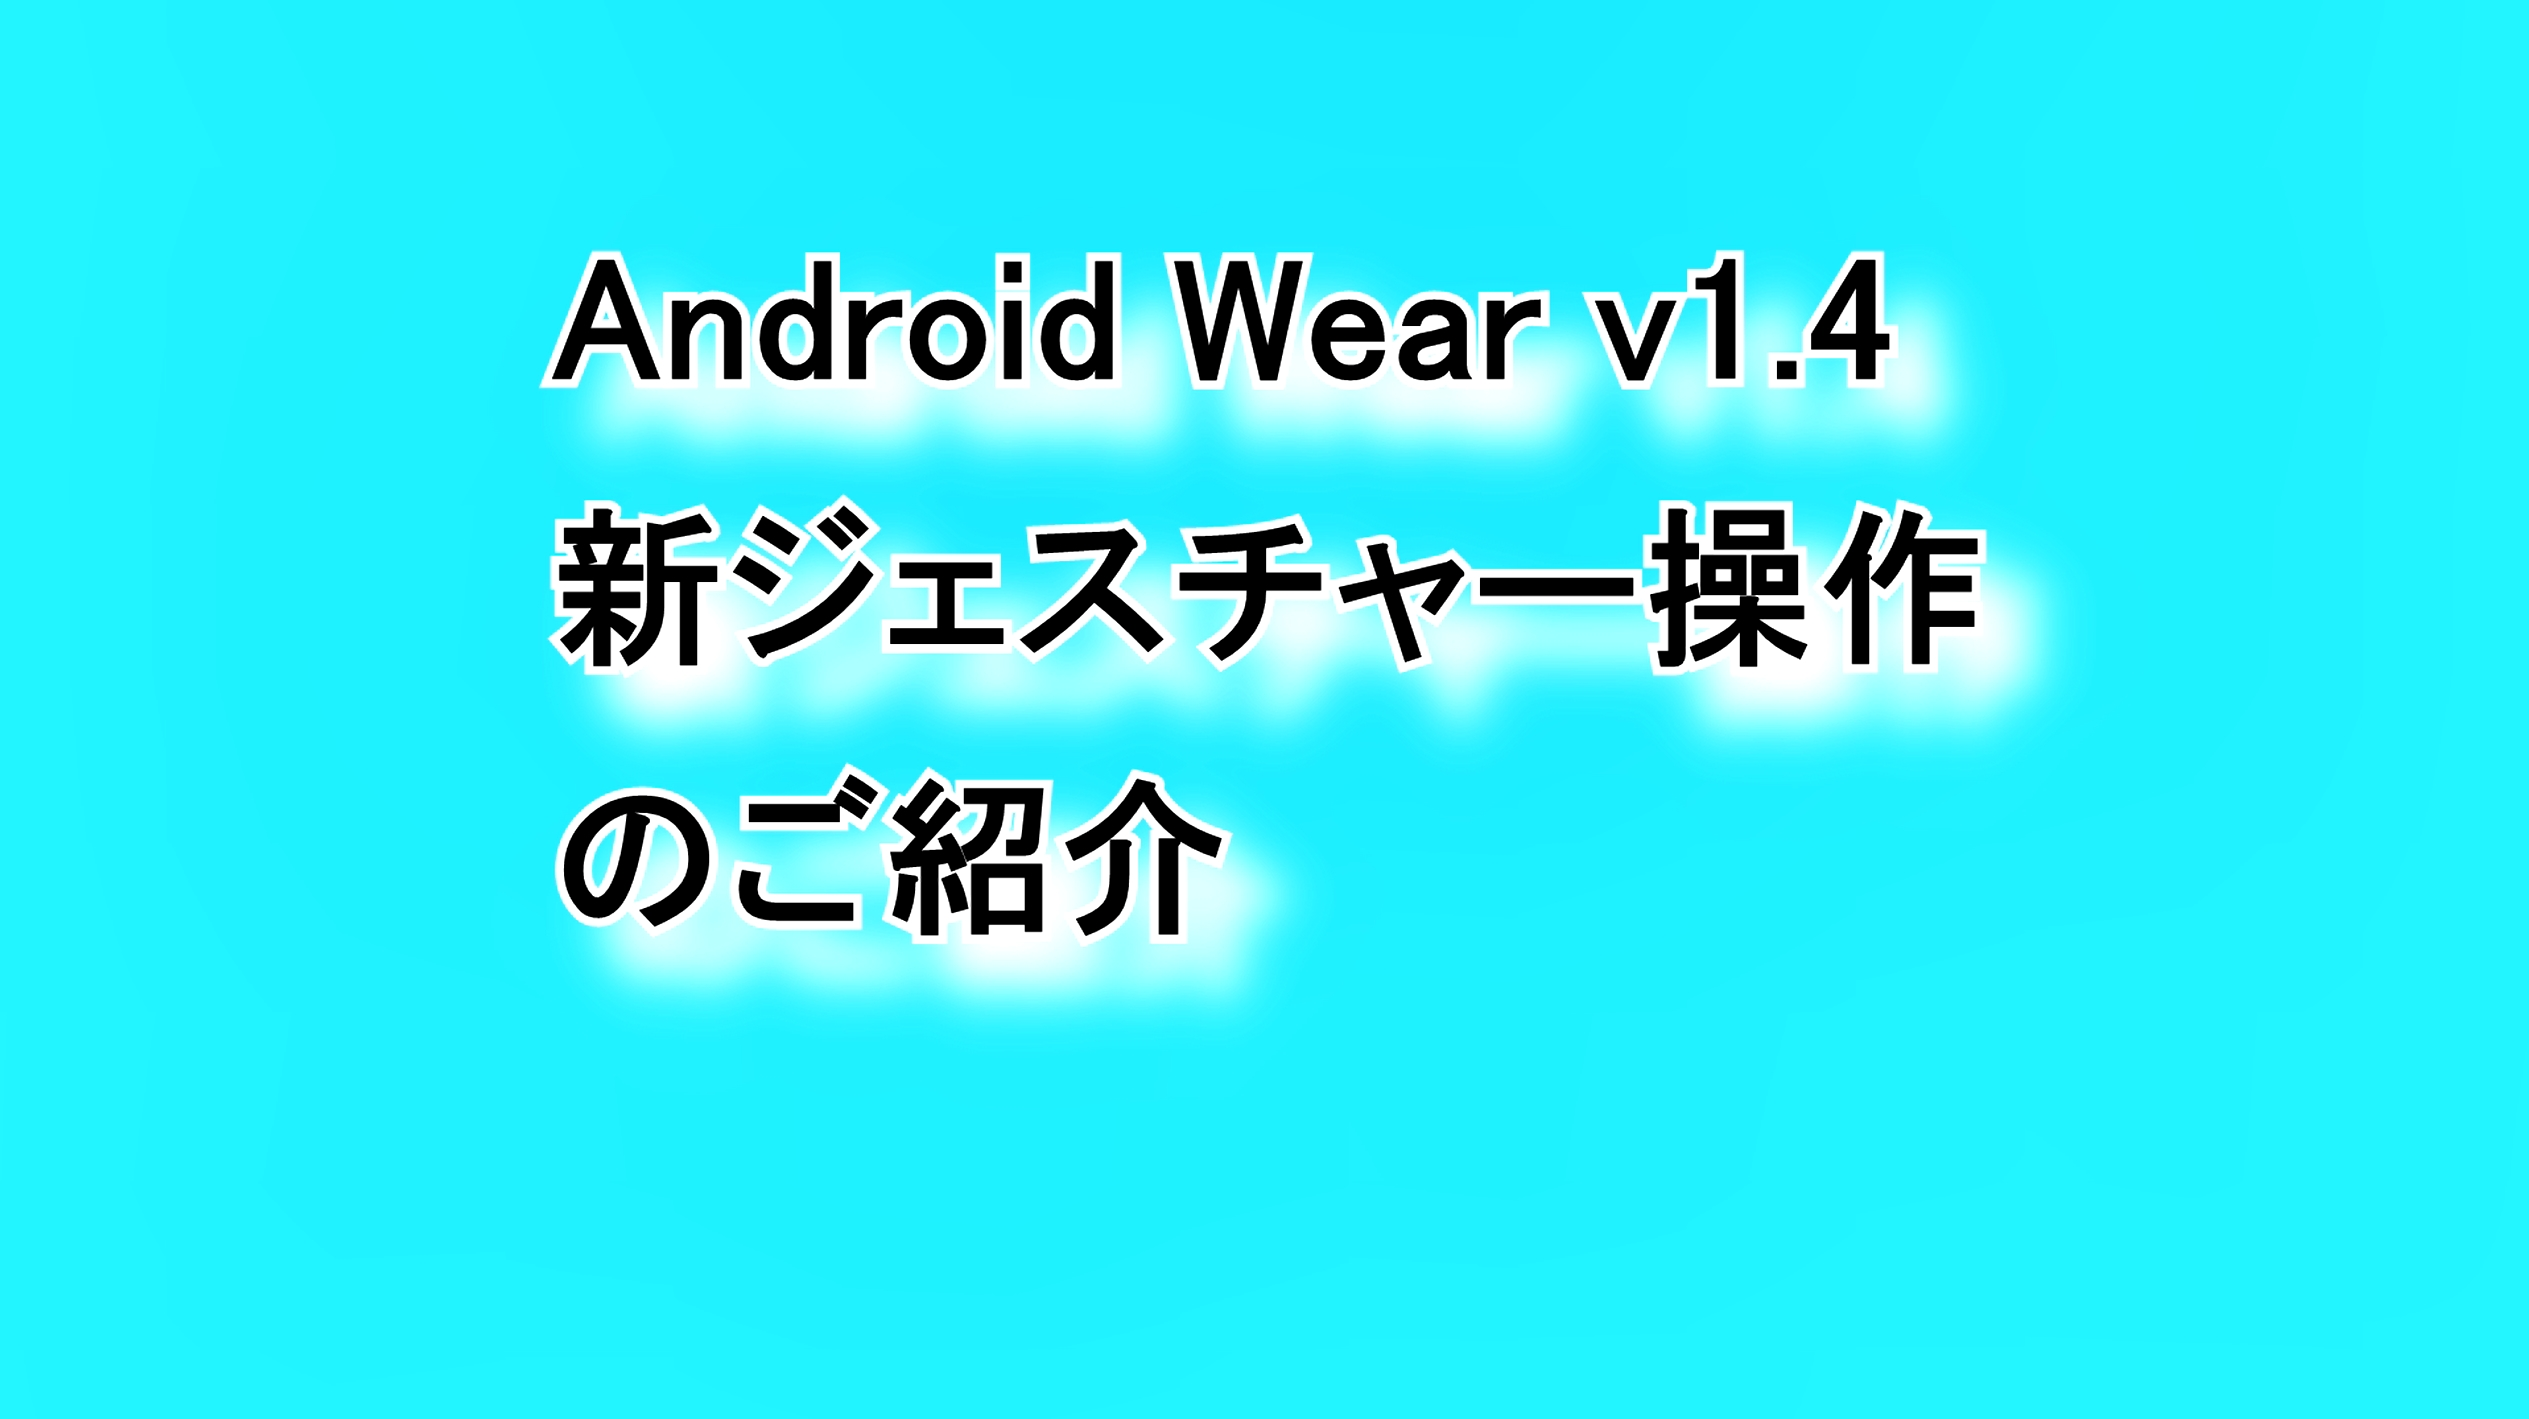 Android Wear 1.4(Android 6.0.1)追加された新しいジェスチャー操作機能